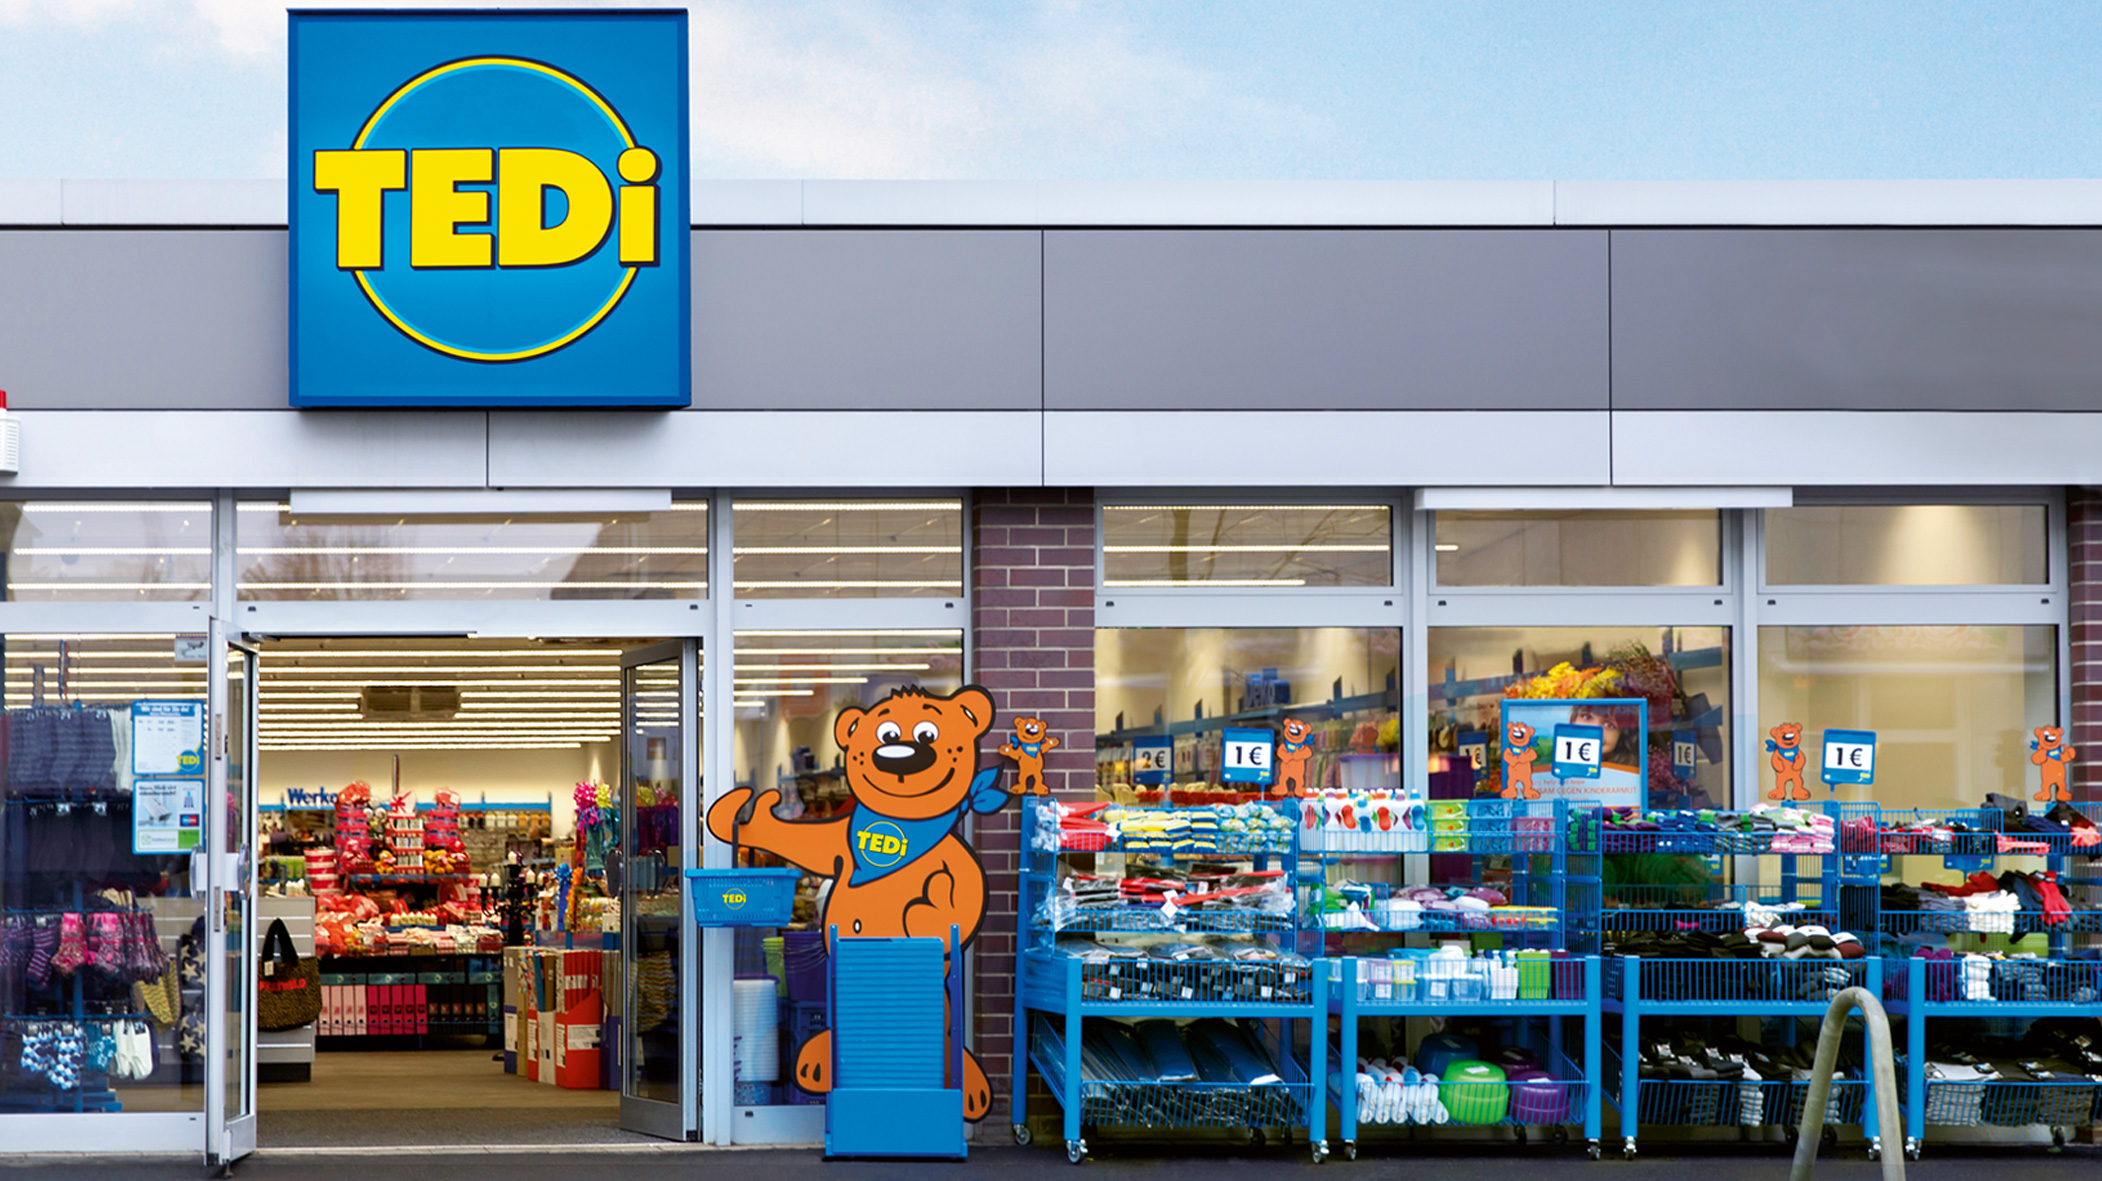 TEDi and Newsletter2Go Email Marketing